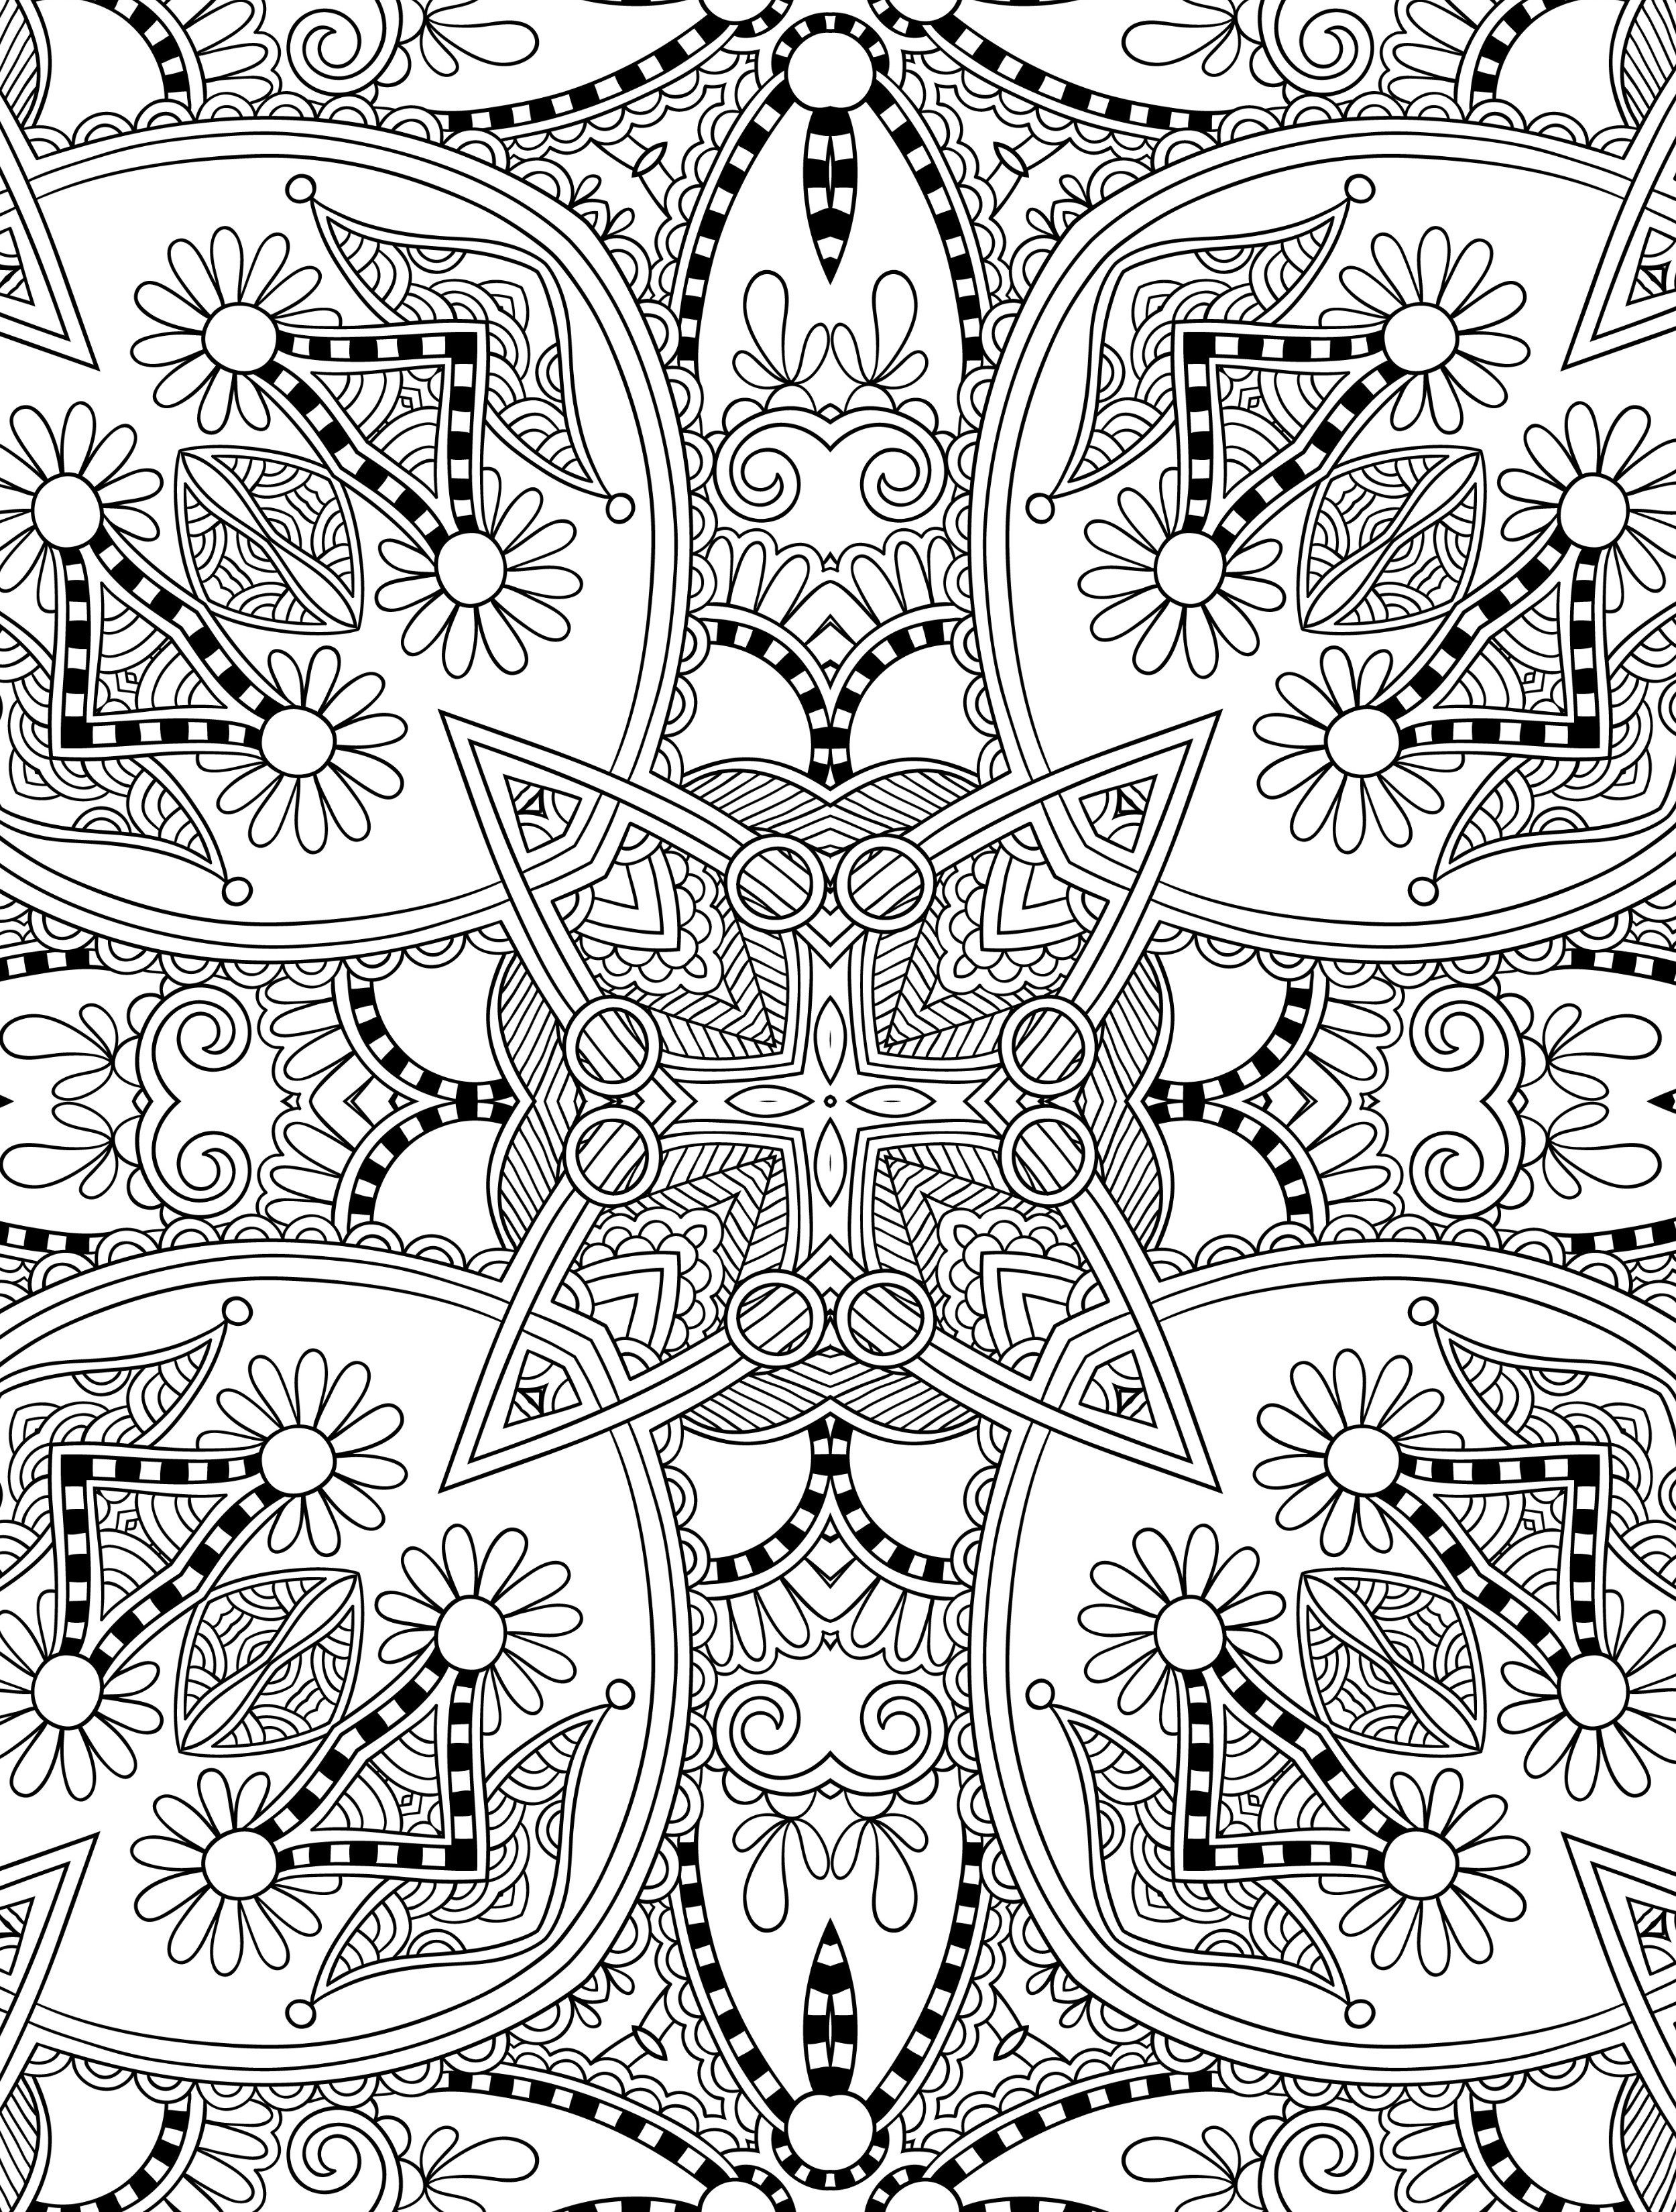 Abstract Doodle Zentangle Paisley Coloring Pages Colouring Adult